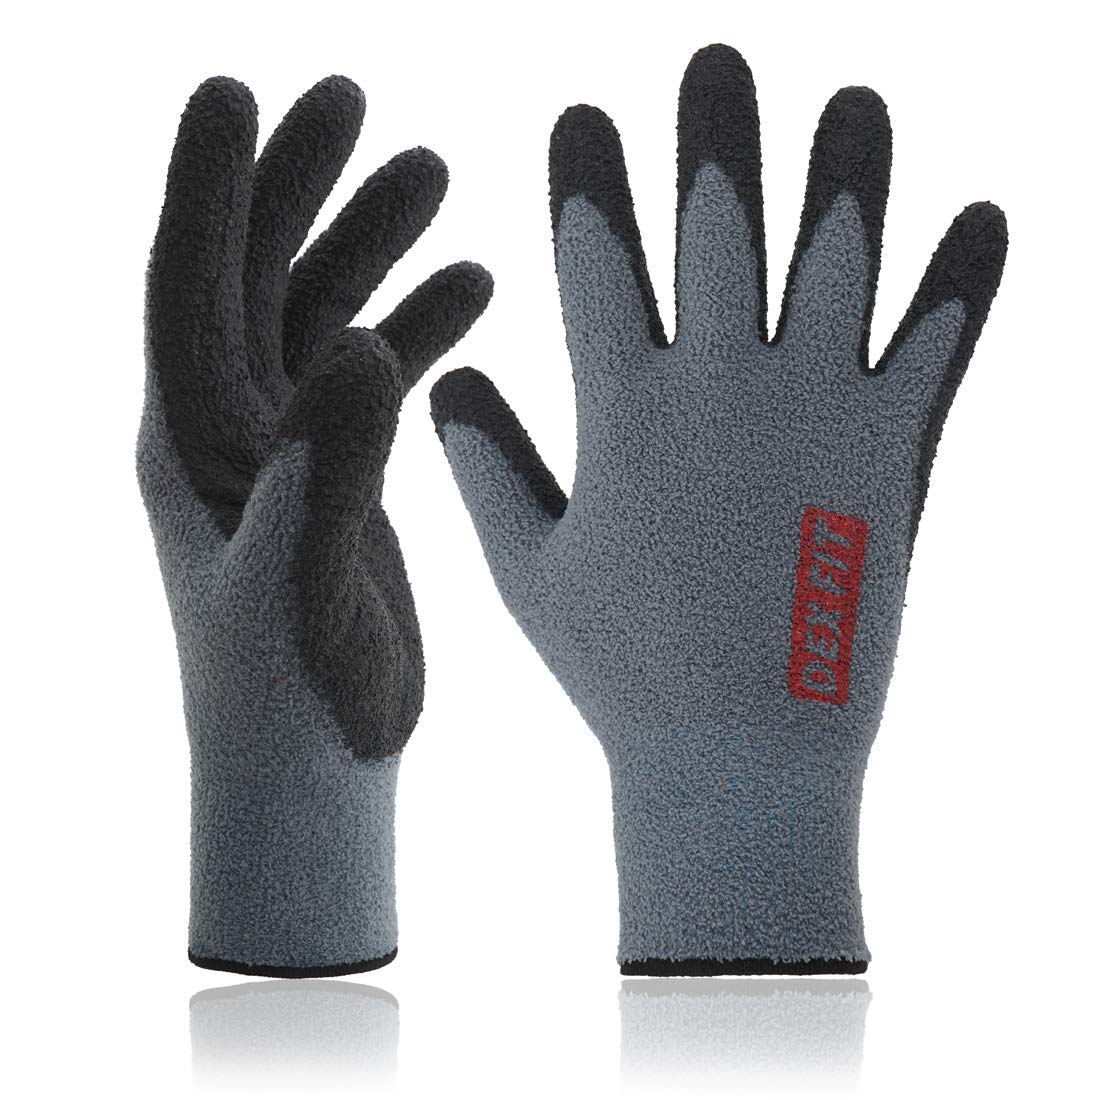 DEX FIT Warm Fleece Work Gloves NR450, Comfort Spandex Stretch Fit, Power Grip, Durable Nitrile Coated, Thin & Lightweight, Machine Washable Prime Grey, Small 3 Pairs Pack